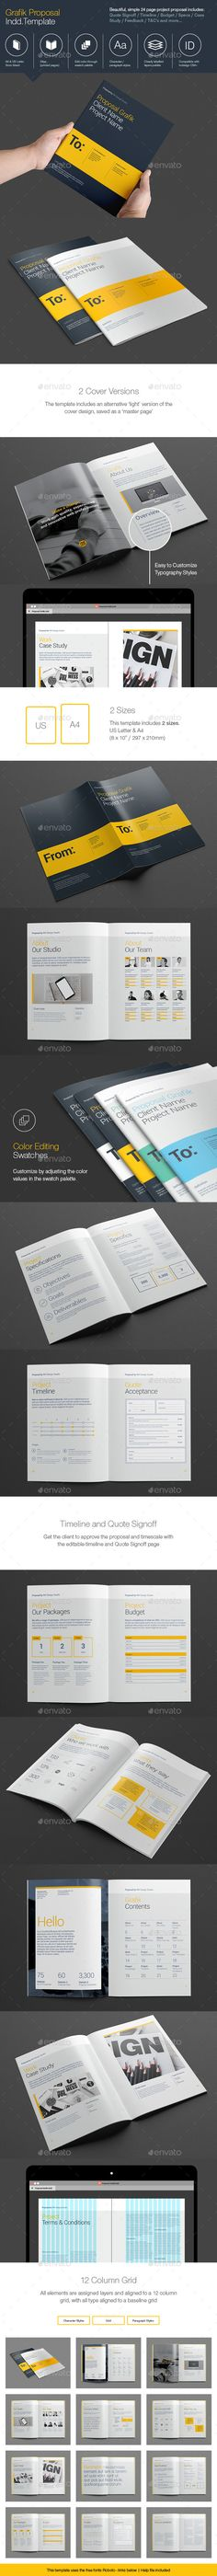 Business Project Proposal Template-V280 Project proposal - download business proposal template